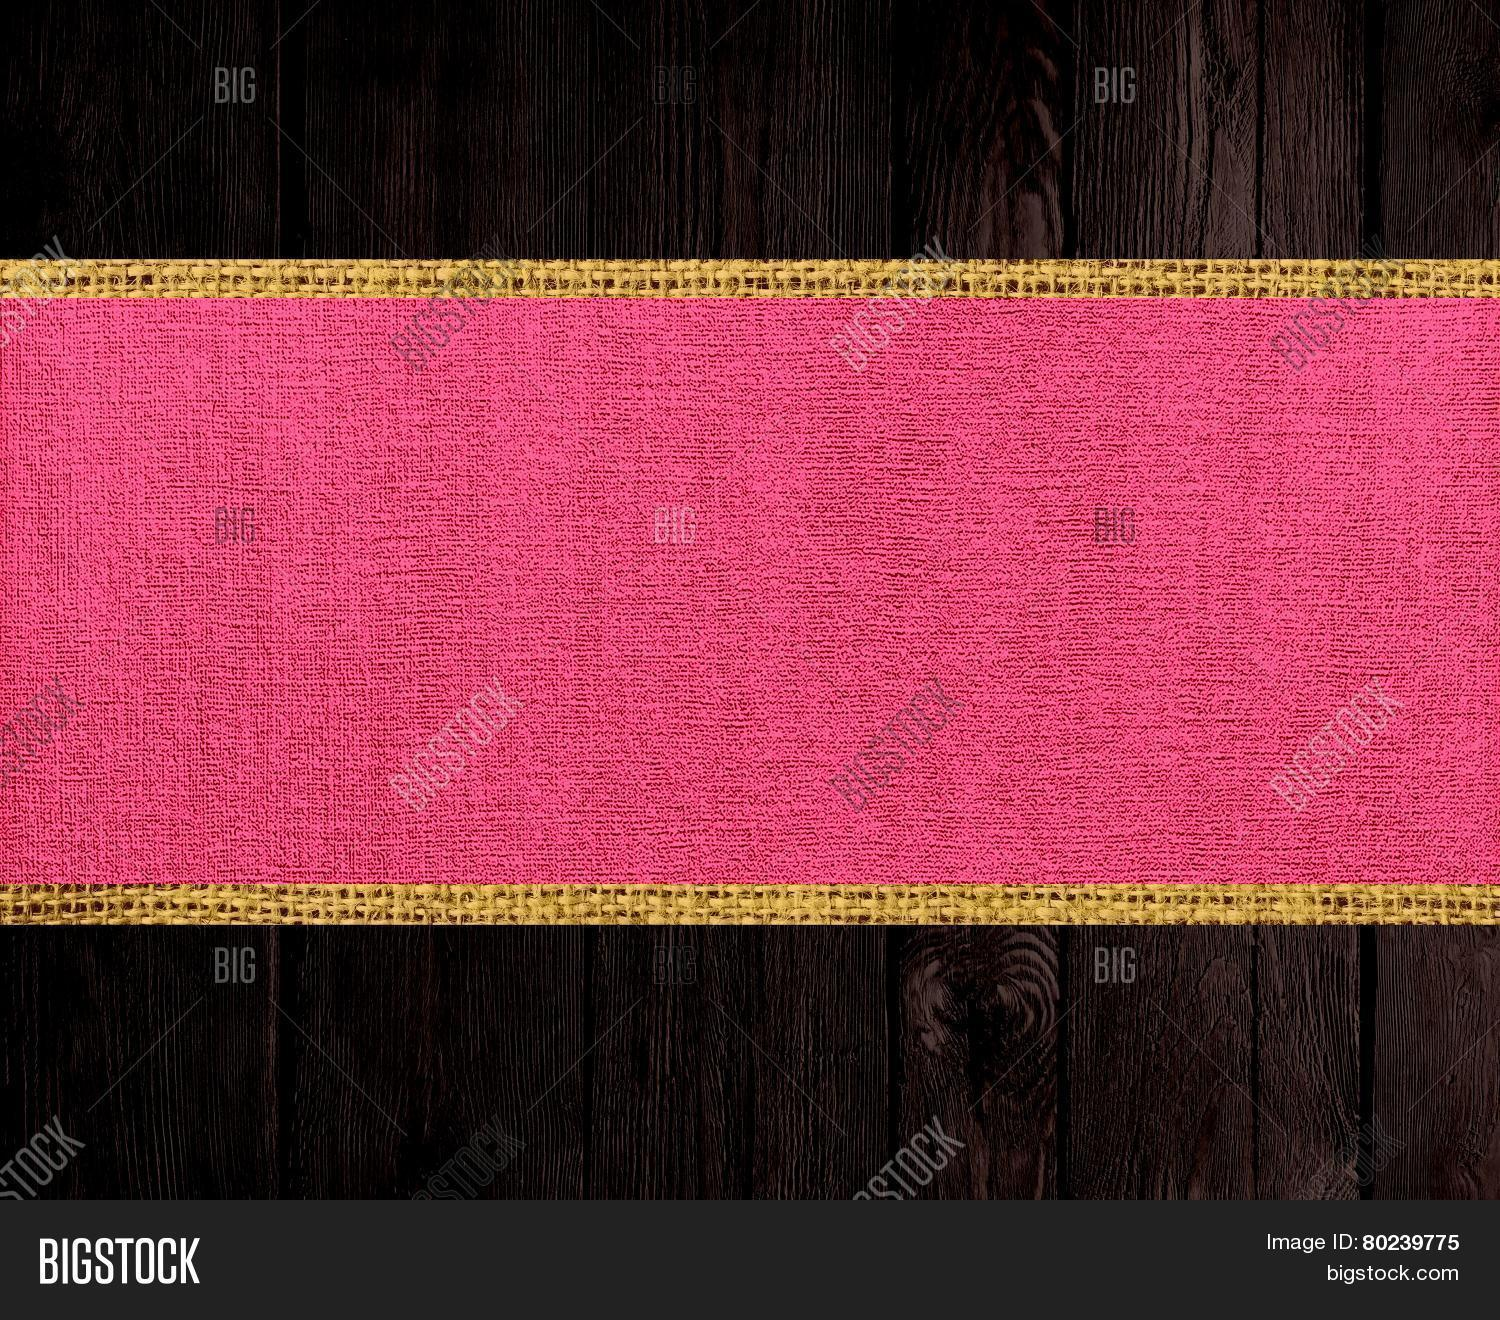 Hot Pink Burlap Rustic Canvas Banner Textured With Dark Wood Background